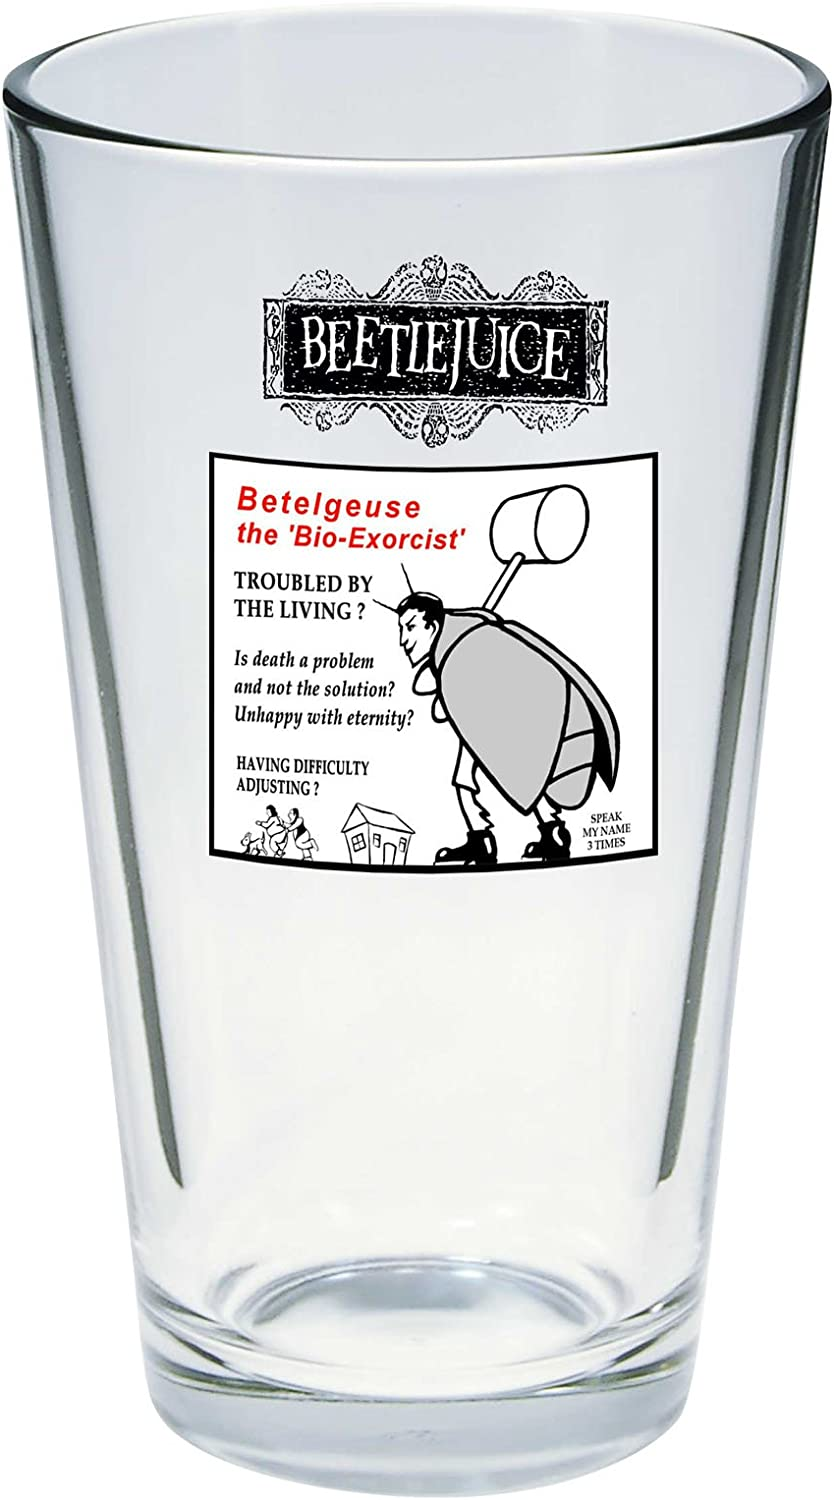 Beetlejuice Pint Glass Diamond Select New in Box